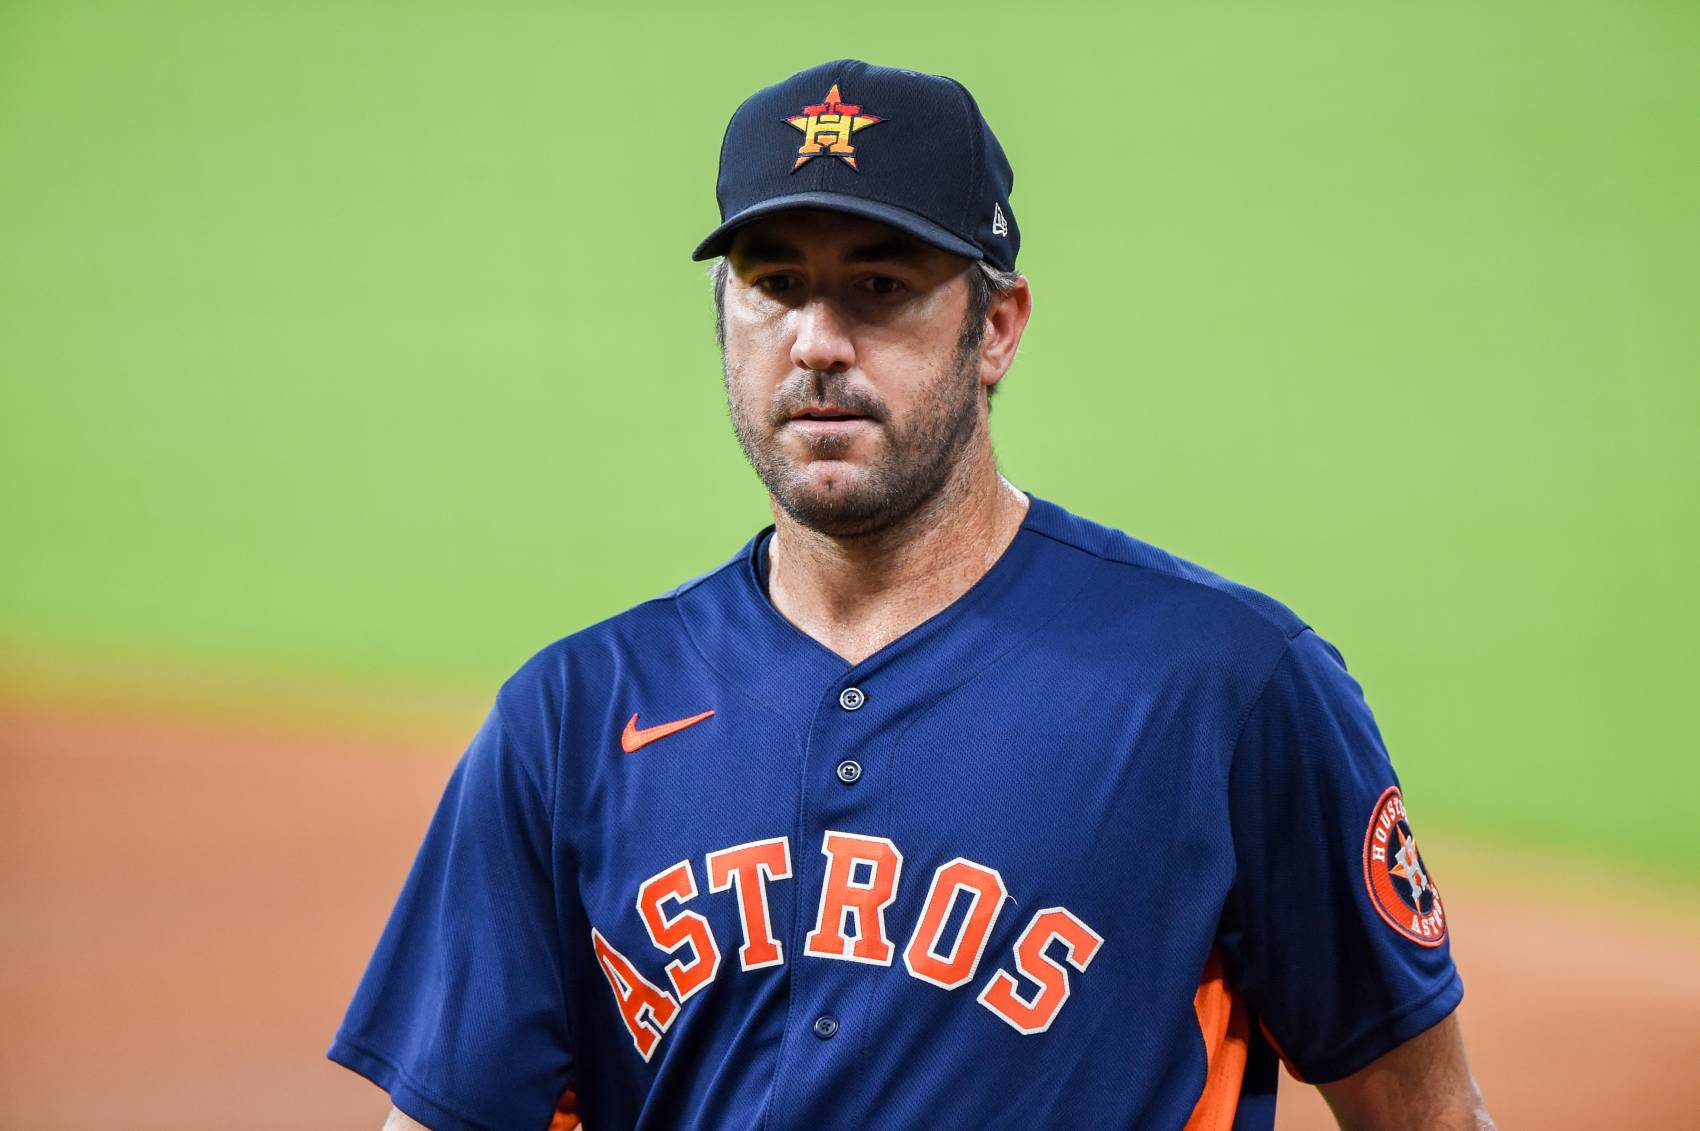 Houston Astros ace Justin Verlander will miss time with a forearm injury.